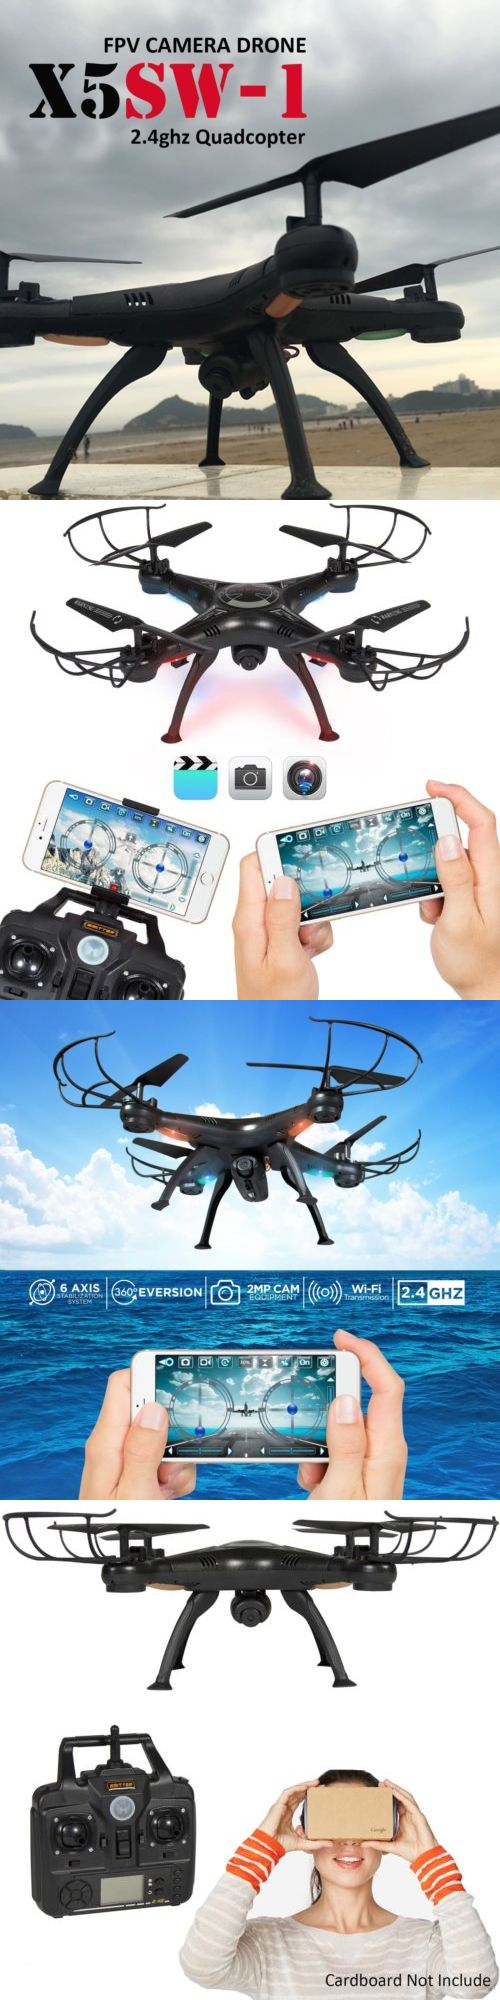 Other RC Model Vehicles and Kits 182186: X5sw -1 Wifi Rc Quadcopter Drone With Hd Camera Rtf Black Uav Arf Drone Fpv 2.4G -> BUY IT NOW ONLY: $46.54 on eBay!